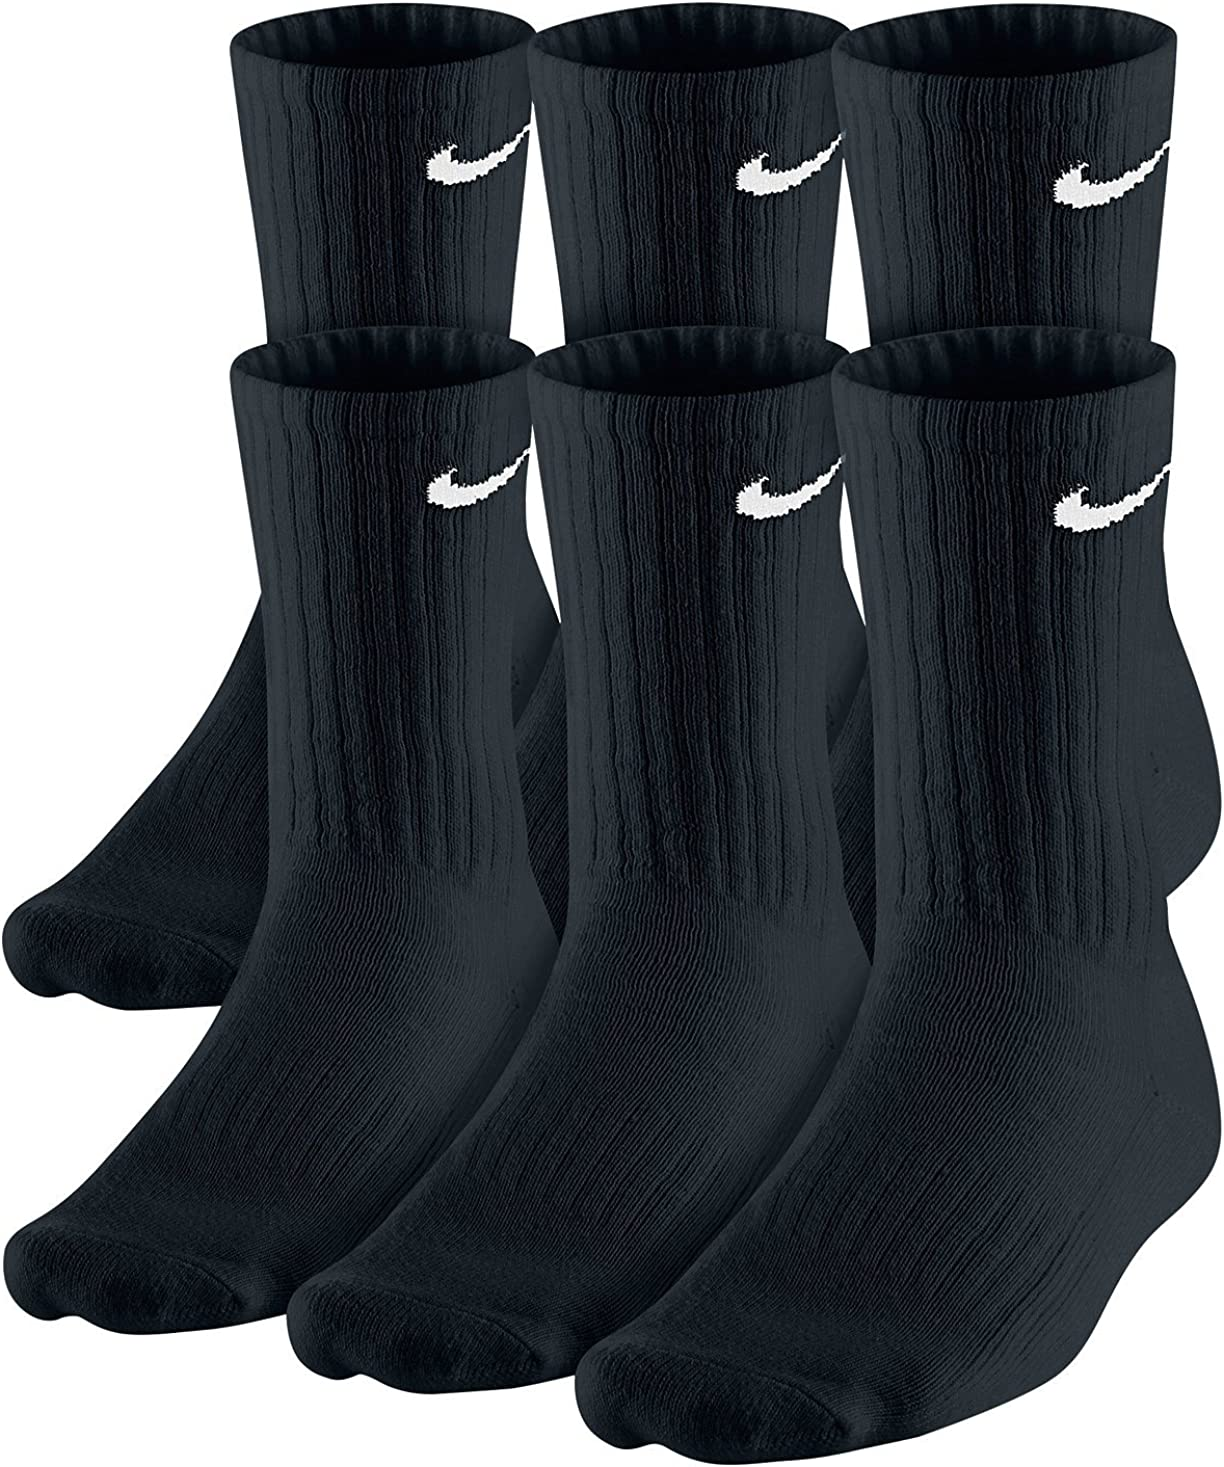 Nike Dri-Fit Classic Cushioned Crew Socks 6 Pair Black with, Black, Size 9.0